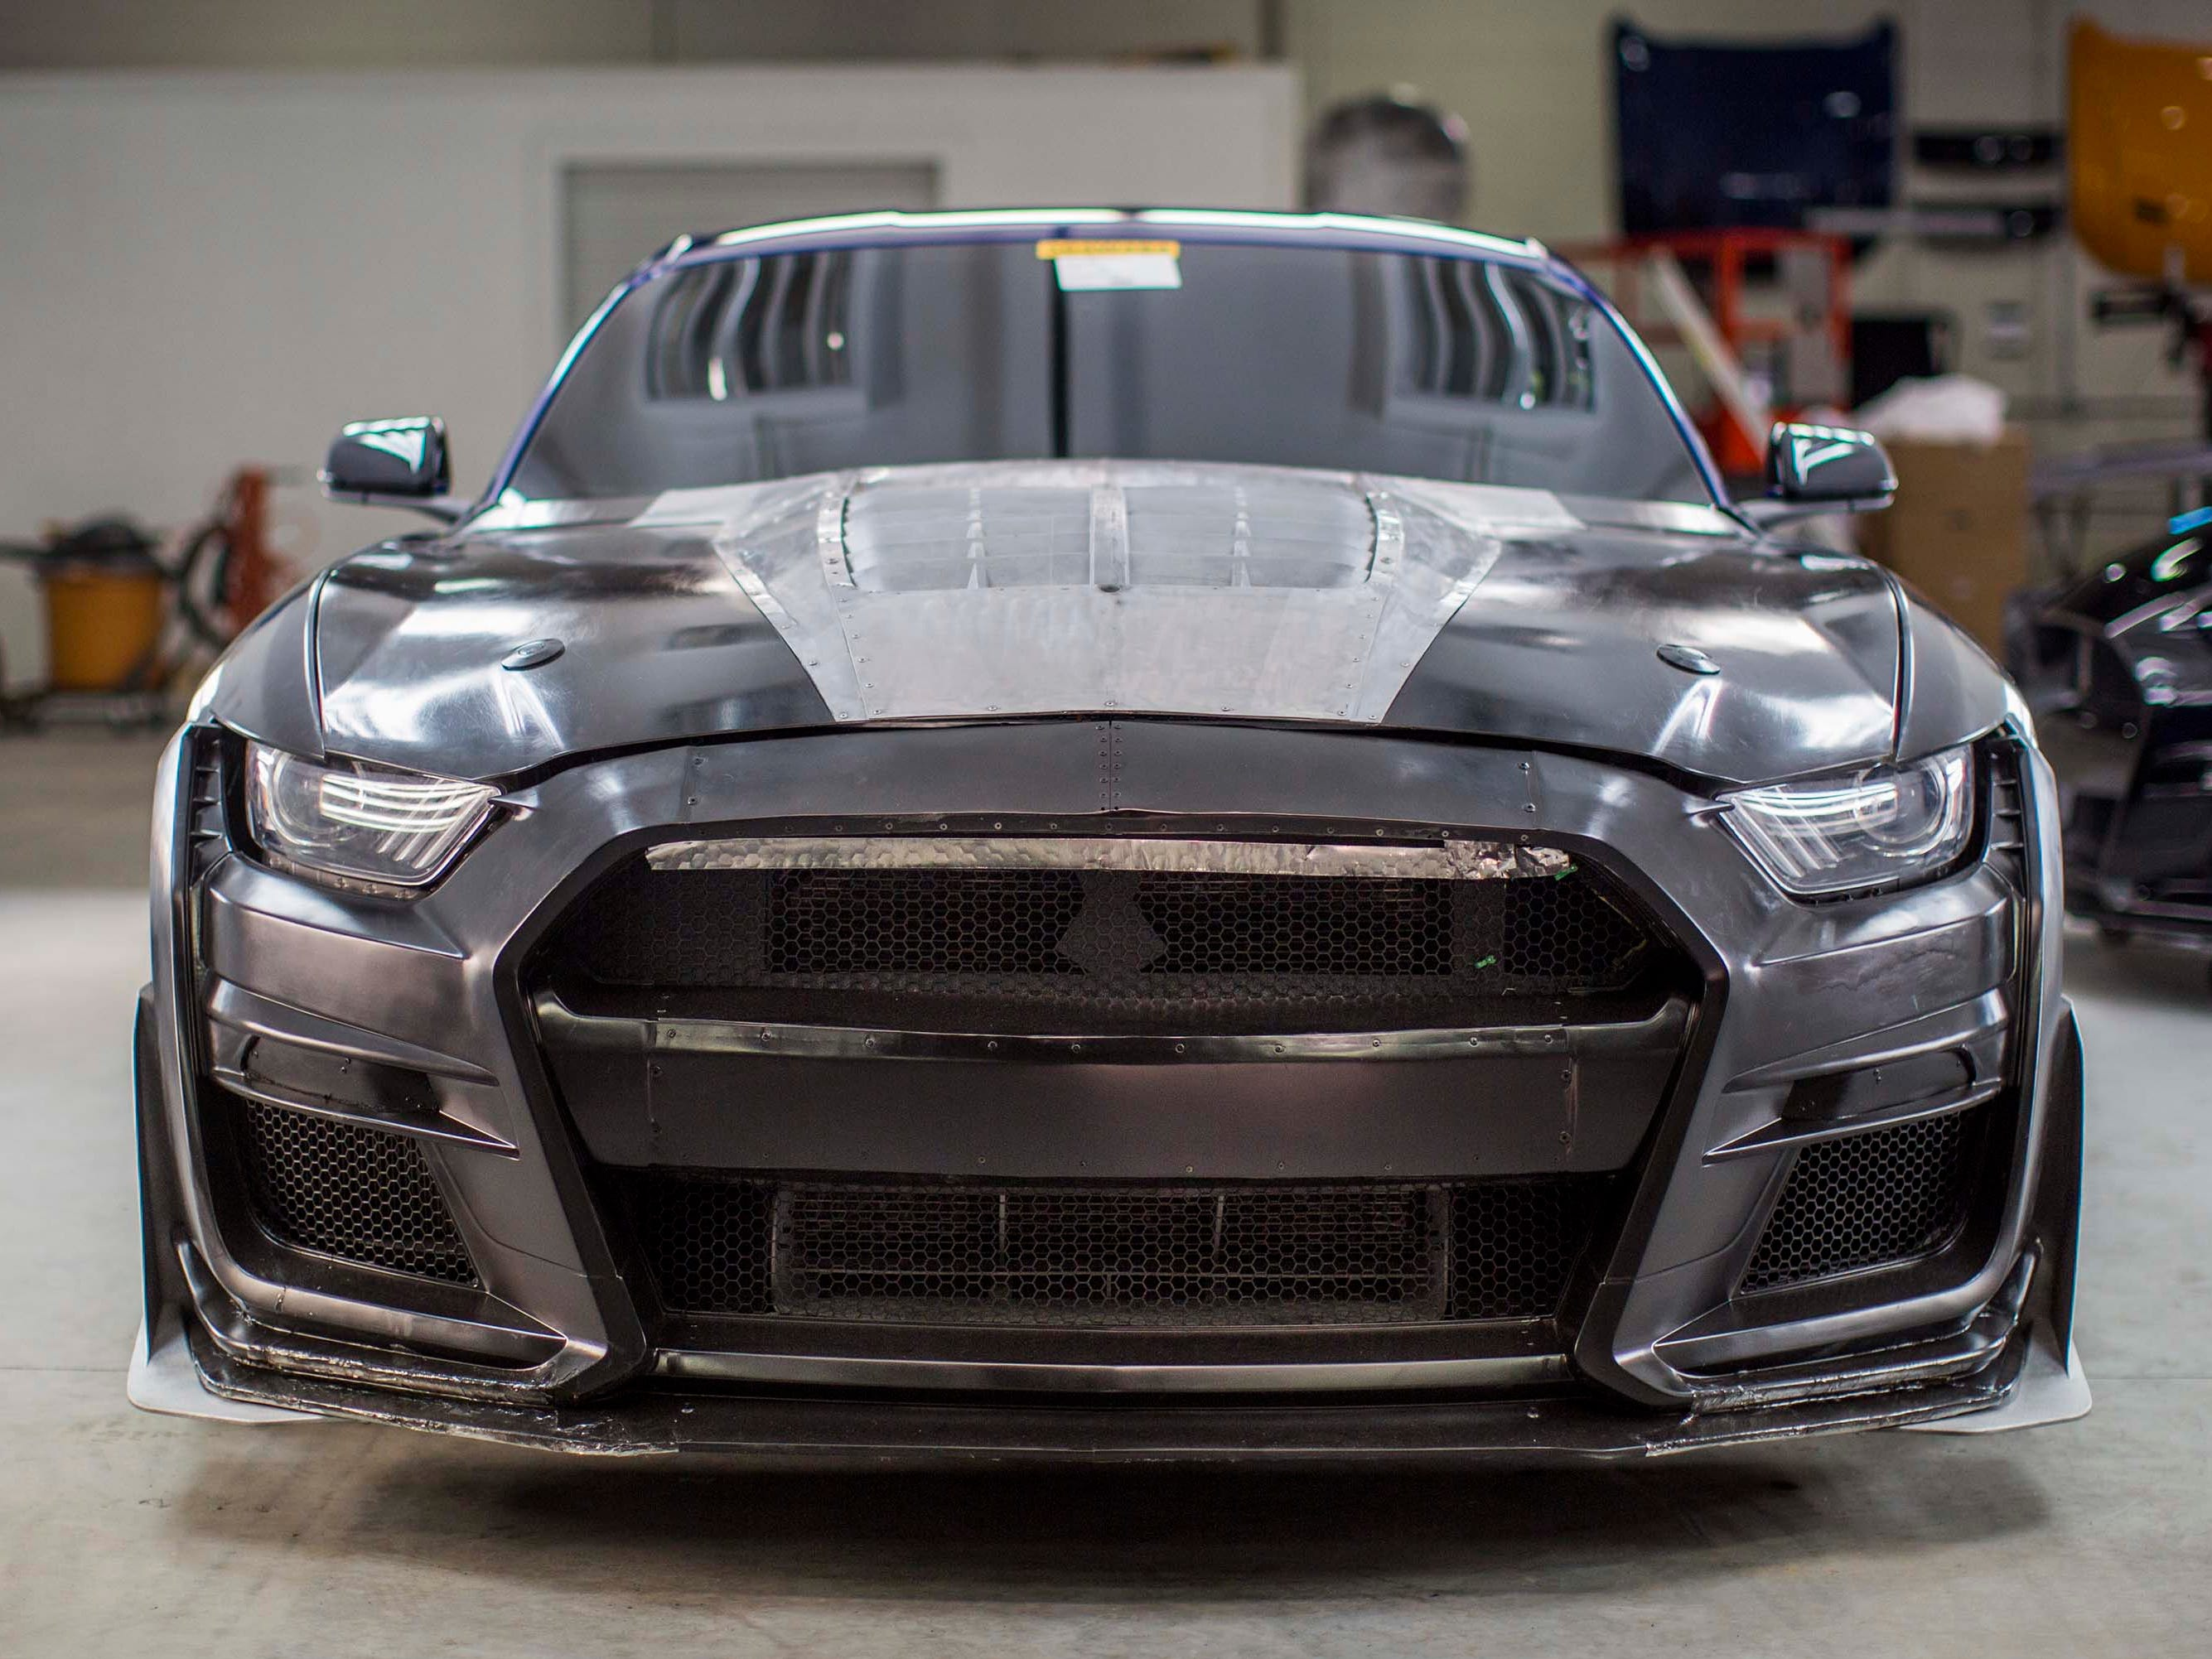 The front grille of the 2020 Ford Mustang GT500 is 50 percent larger than that on the already ferocious GT350. The supercharged GT500 will  generate another 200 horses over its sibling.